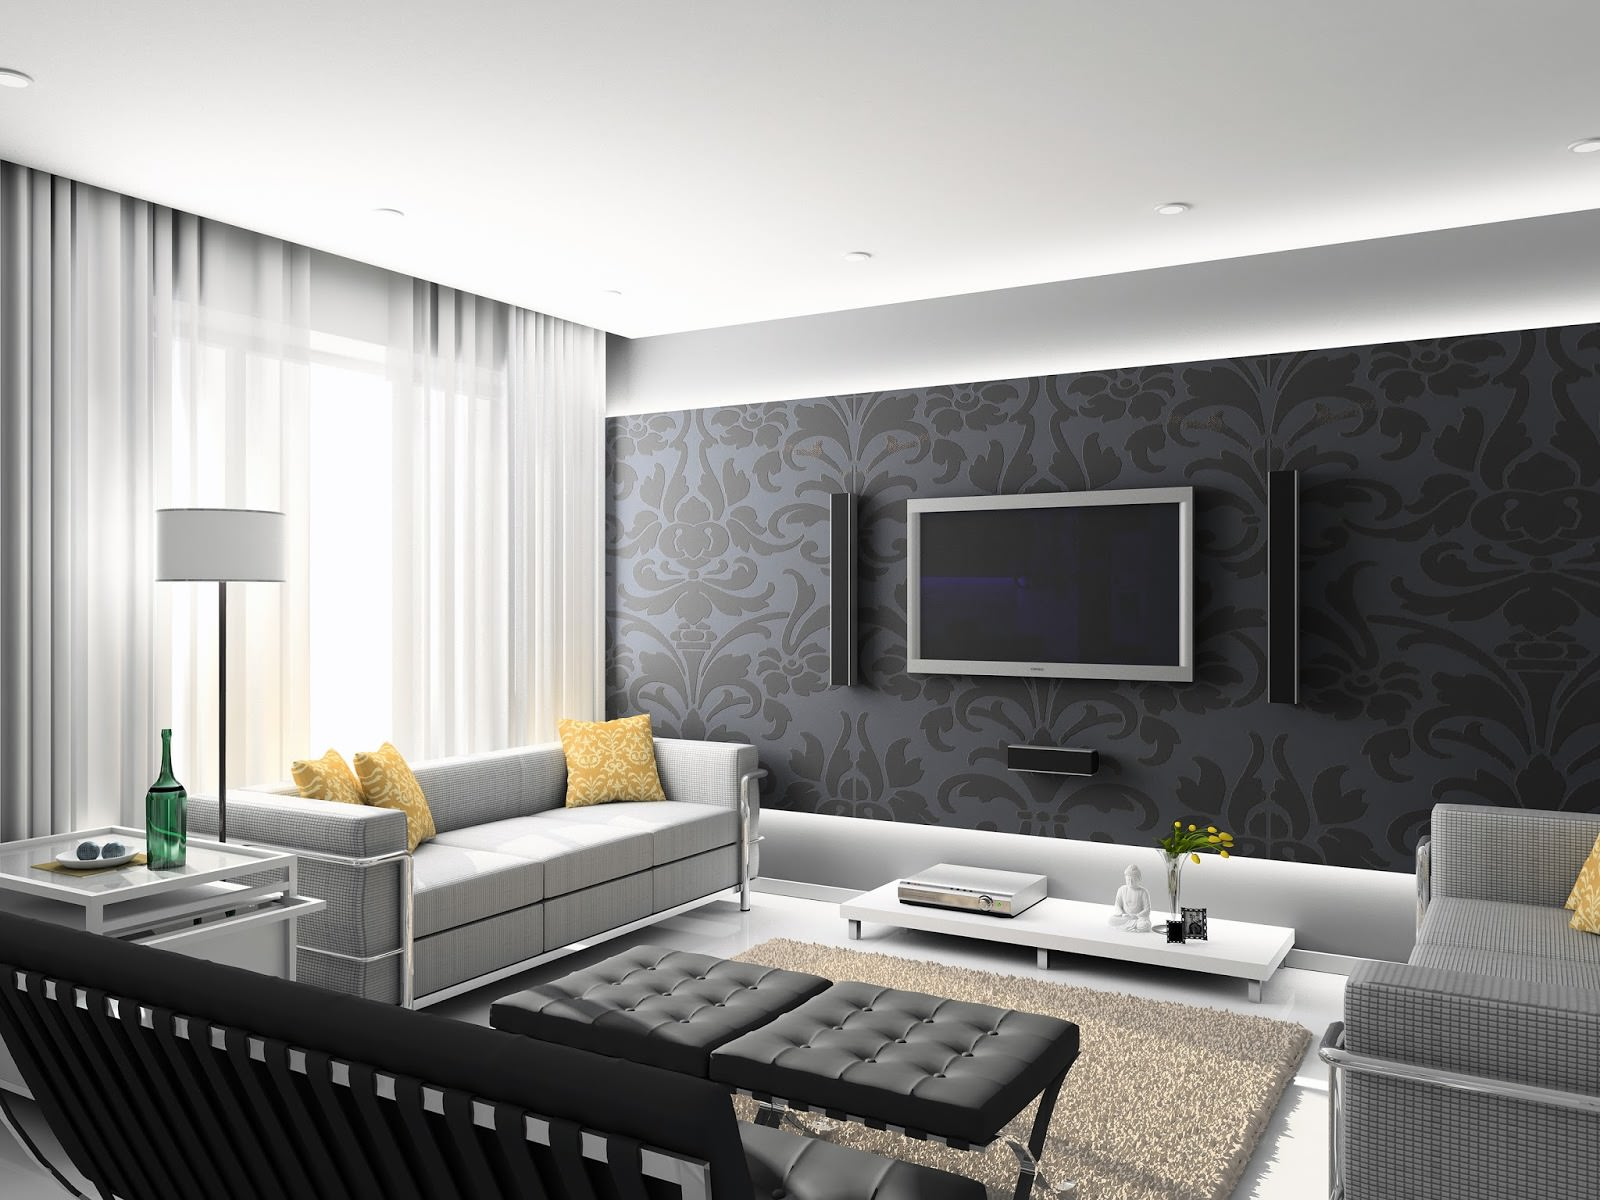 16 modern living room designs decorating ideas design trends premium psd vector downloads. Black Bedroom Furniture Sets. Home Design Ideas